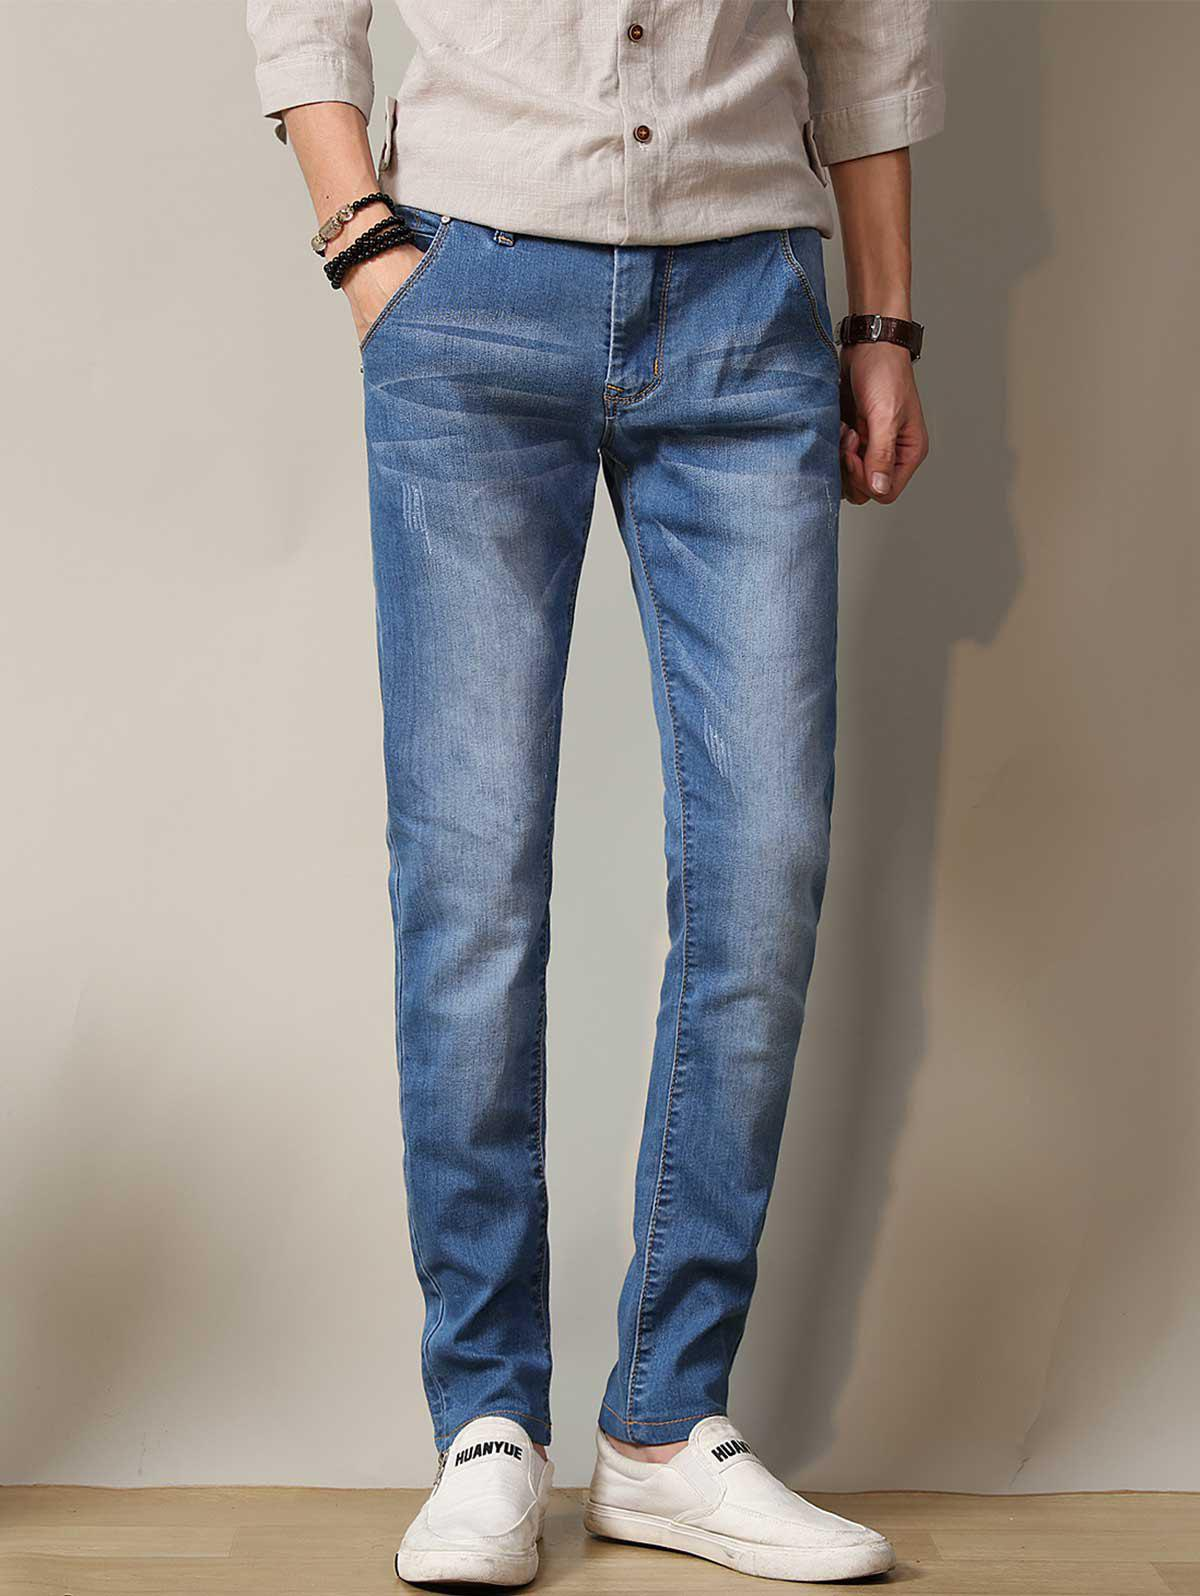 Zipper Fly Straight Leg Stretchy Distressed Jeans zipper fly pocket distressed straight leg jeans page 7